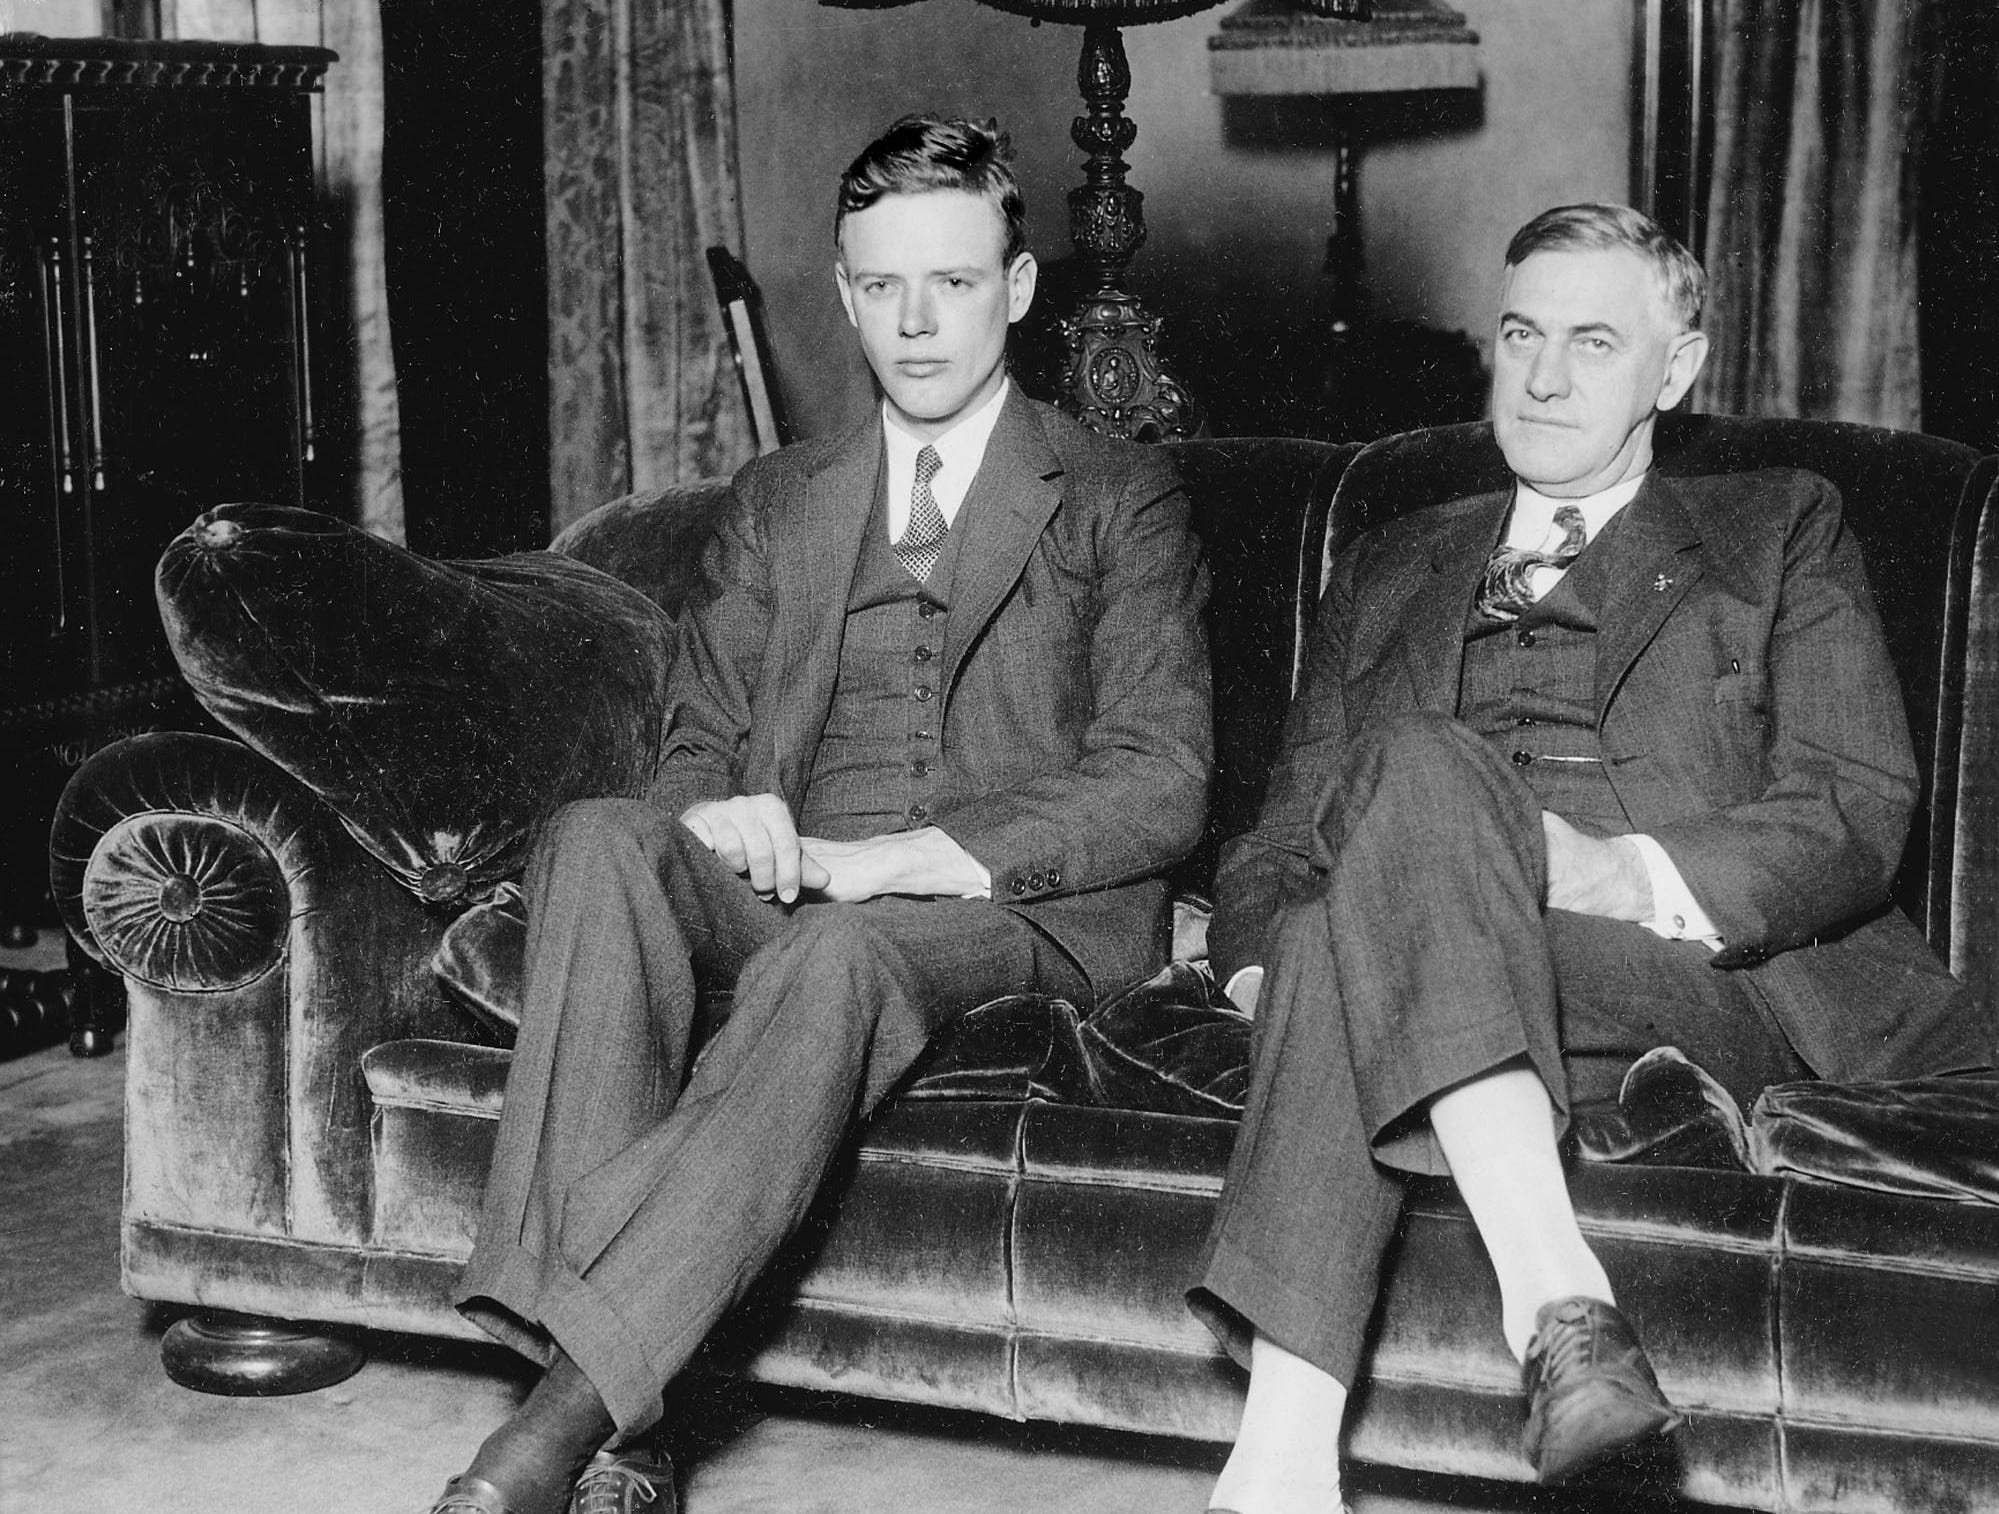 Aviator Charles A. Lindbergh (left), who in 1927 became the first man to fly solo across the Atlantic Ocean, paid an unexpected visit to Indianapolis on Thursday, Jan. 17, 1929. He dropped by the GovernorÕs Mansion on Fall Creek Boulevard to congratulate Indiana Gov. Harry G. Leslie, who took office just three days prior. Lindbergh, 26, arrived in town on Wednesday afternoon, spent the night at the Lincoln Hotel, then arose at 5 a.m. on Thursday. From then until shortly after 9 a.m., he walked unescorted and unnoticed along Downtown streets, enshrouded in heavy fog. Lindbergh was making a cross-country inspection  of proposed airports on a coast-to-coast 24-hour air-rail service that was to be inaugurated April 1 of that year. One of those airports was IndianapolisÕ Mars Hill airport, which was to be used temporarily as a stopping point for the new service.